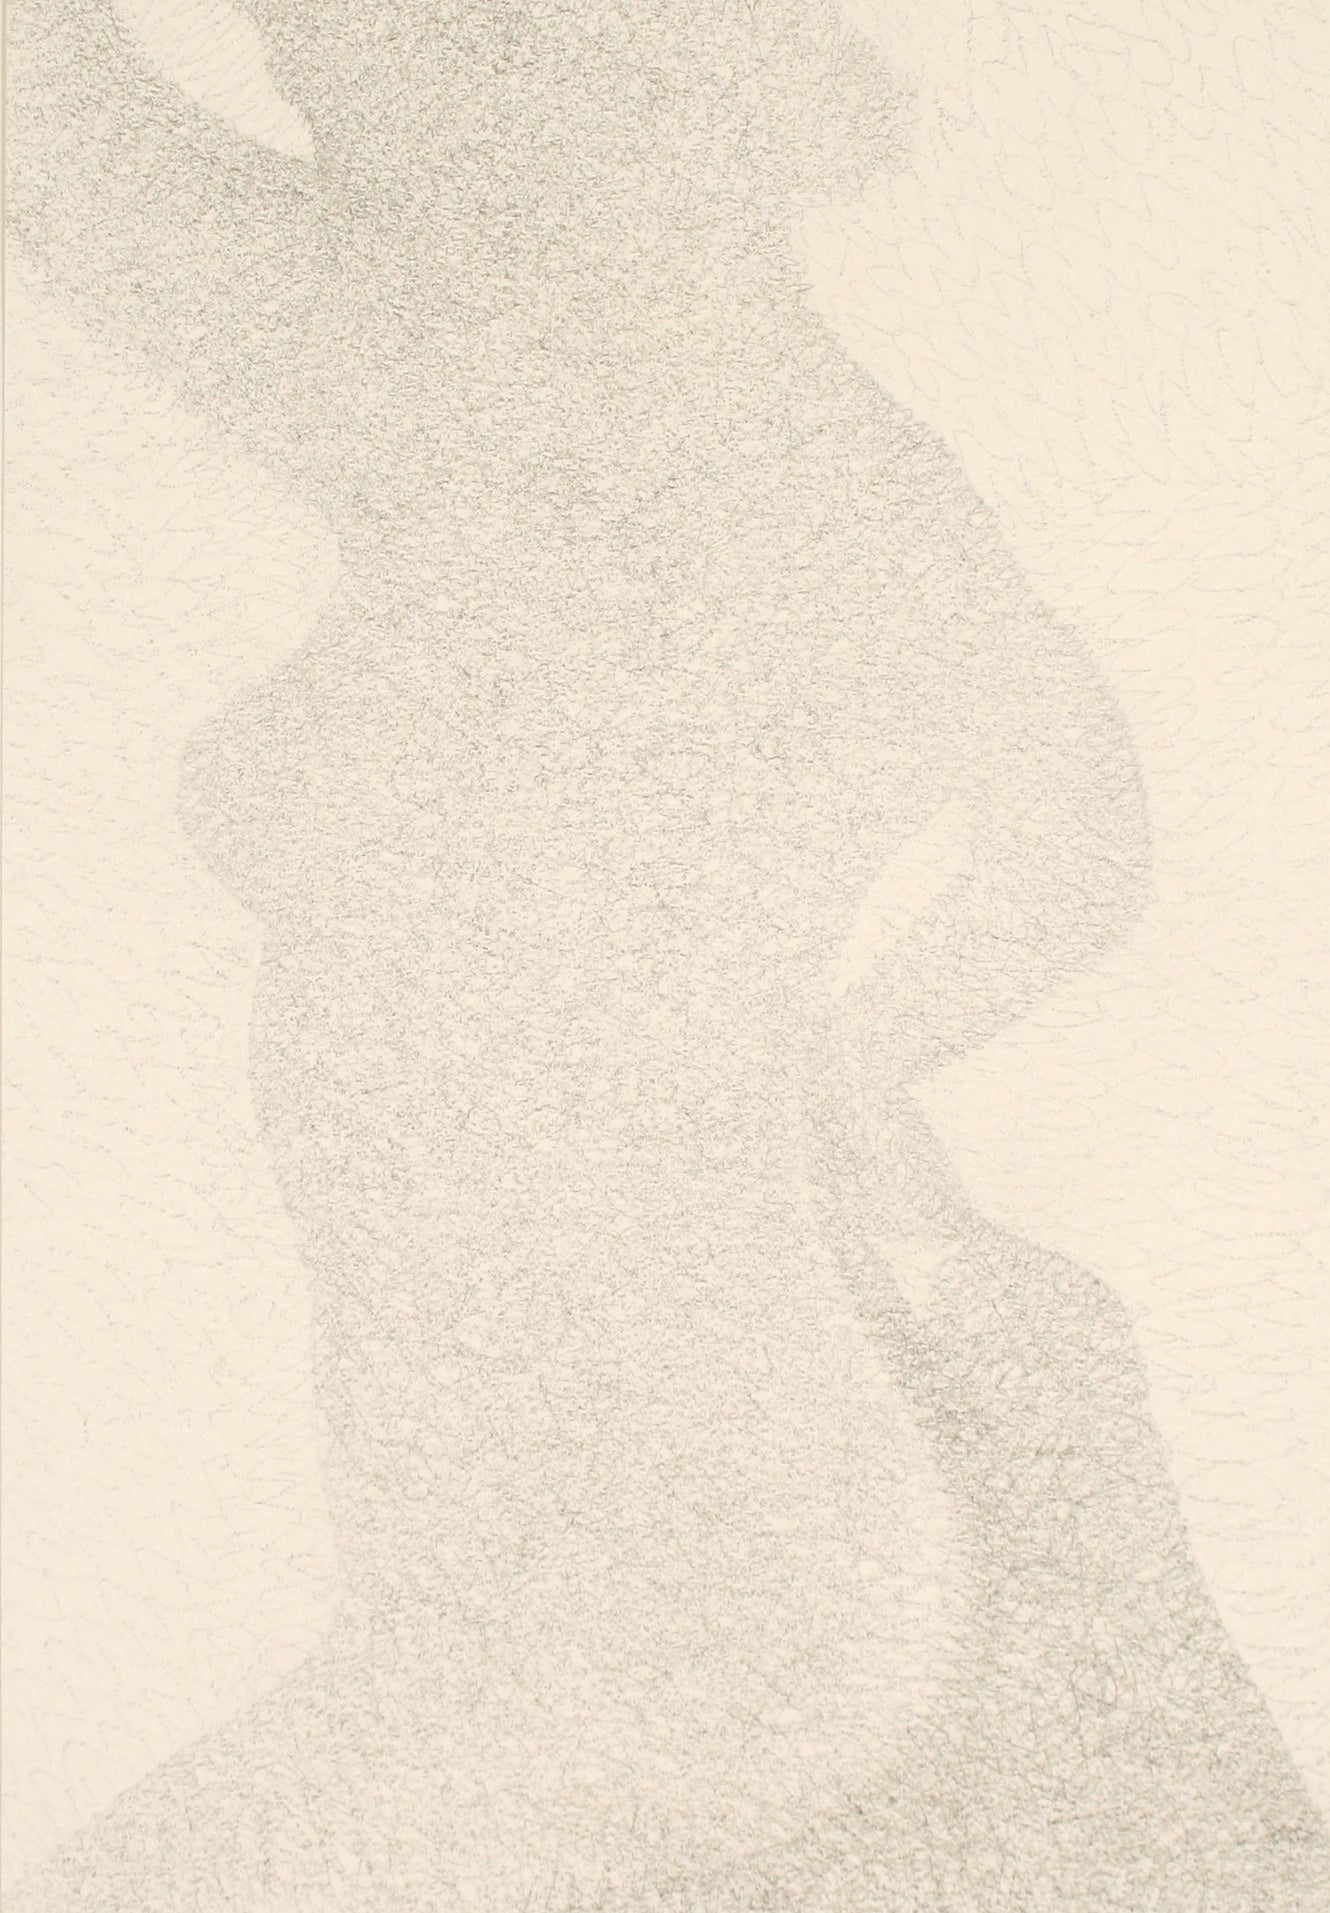 Shadow of a Woman <br>Late 20th Century Graphite <br><br>#71540